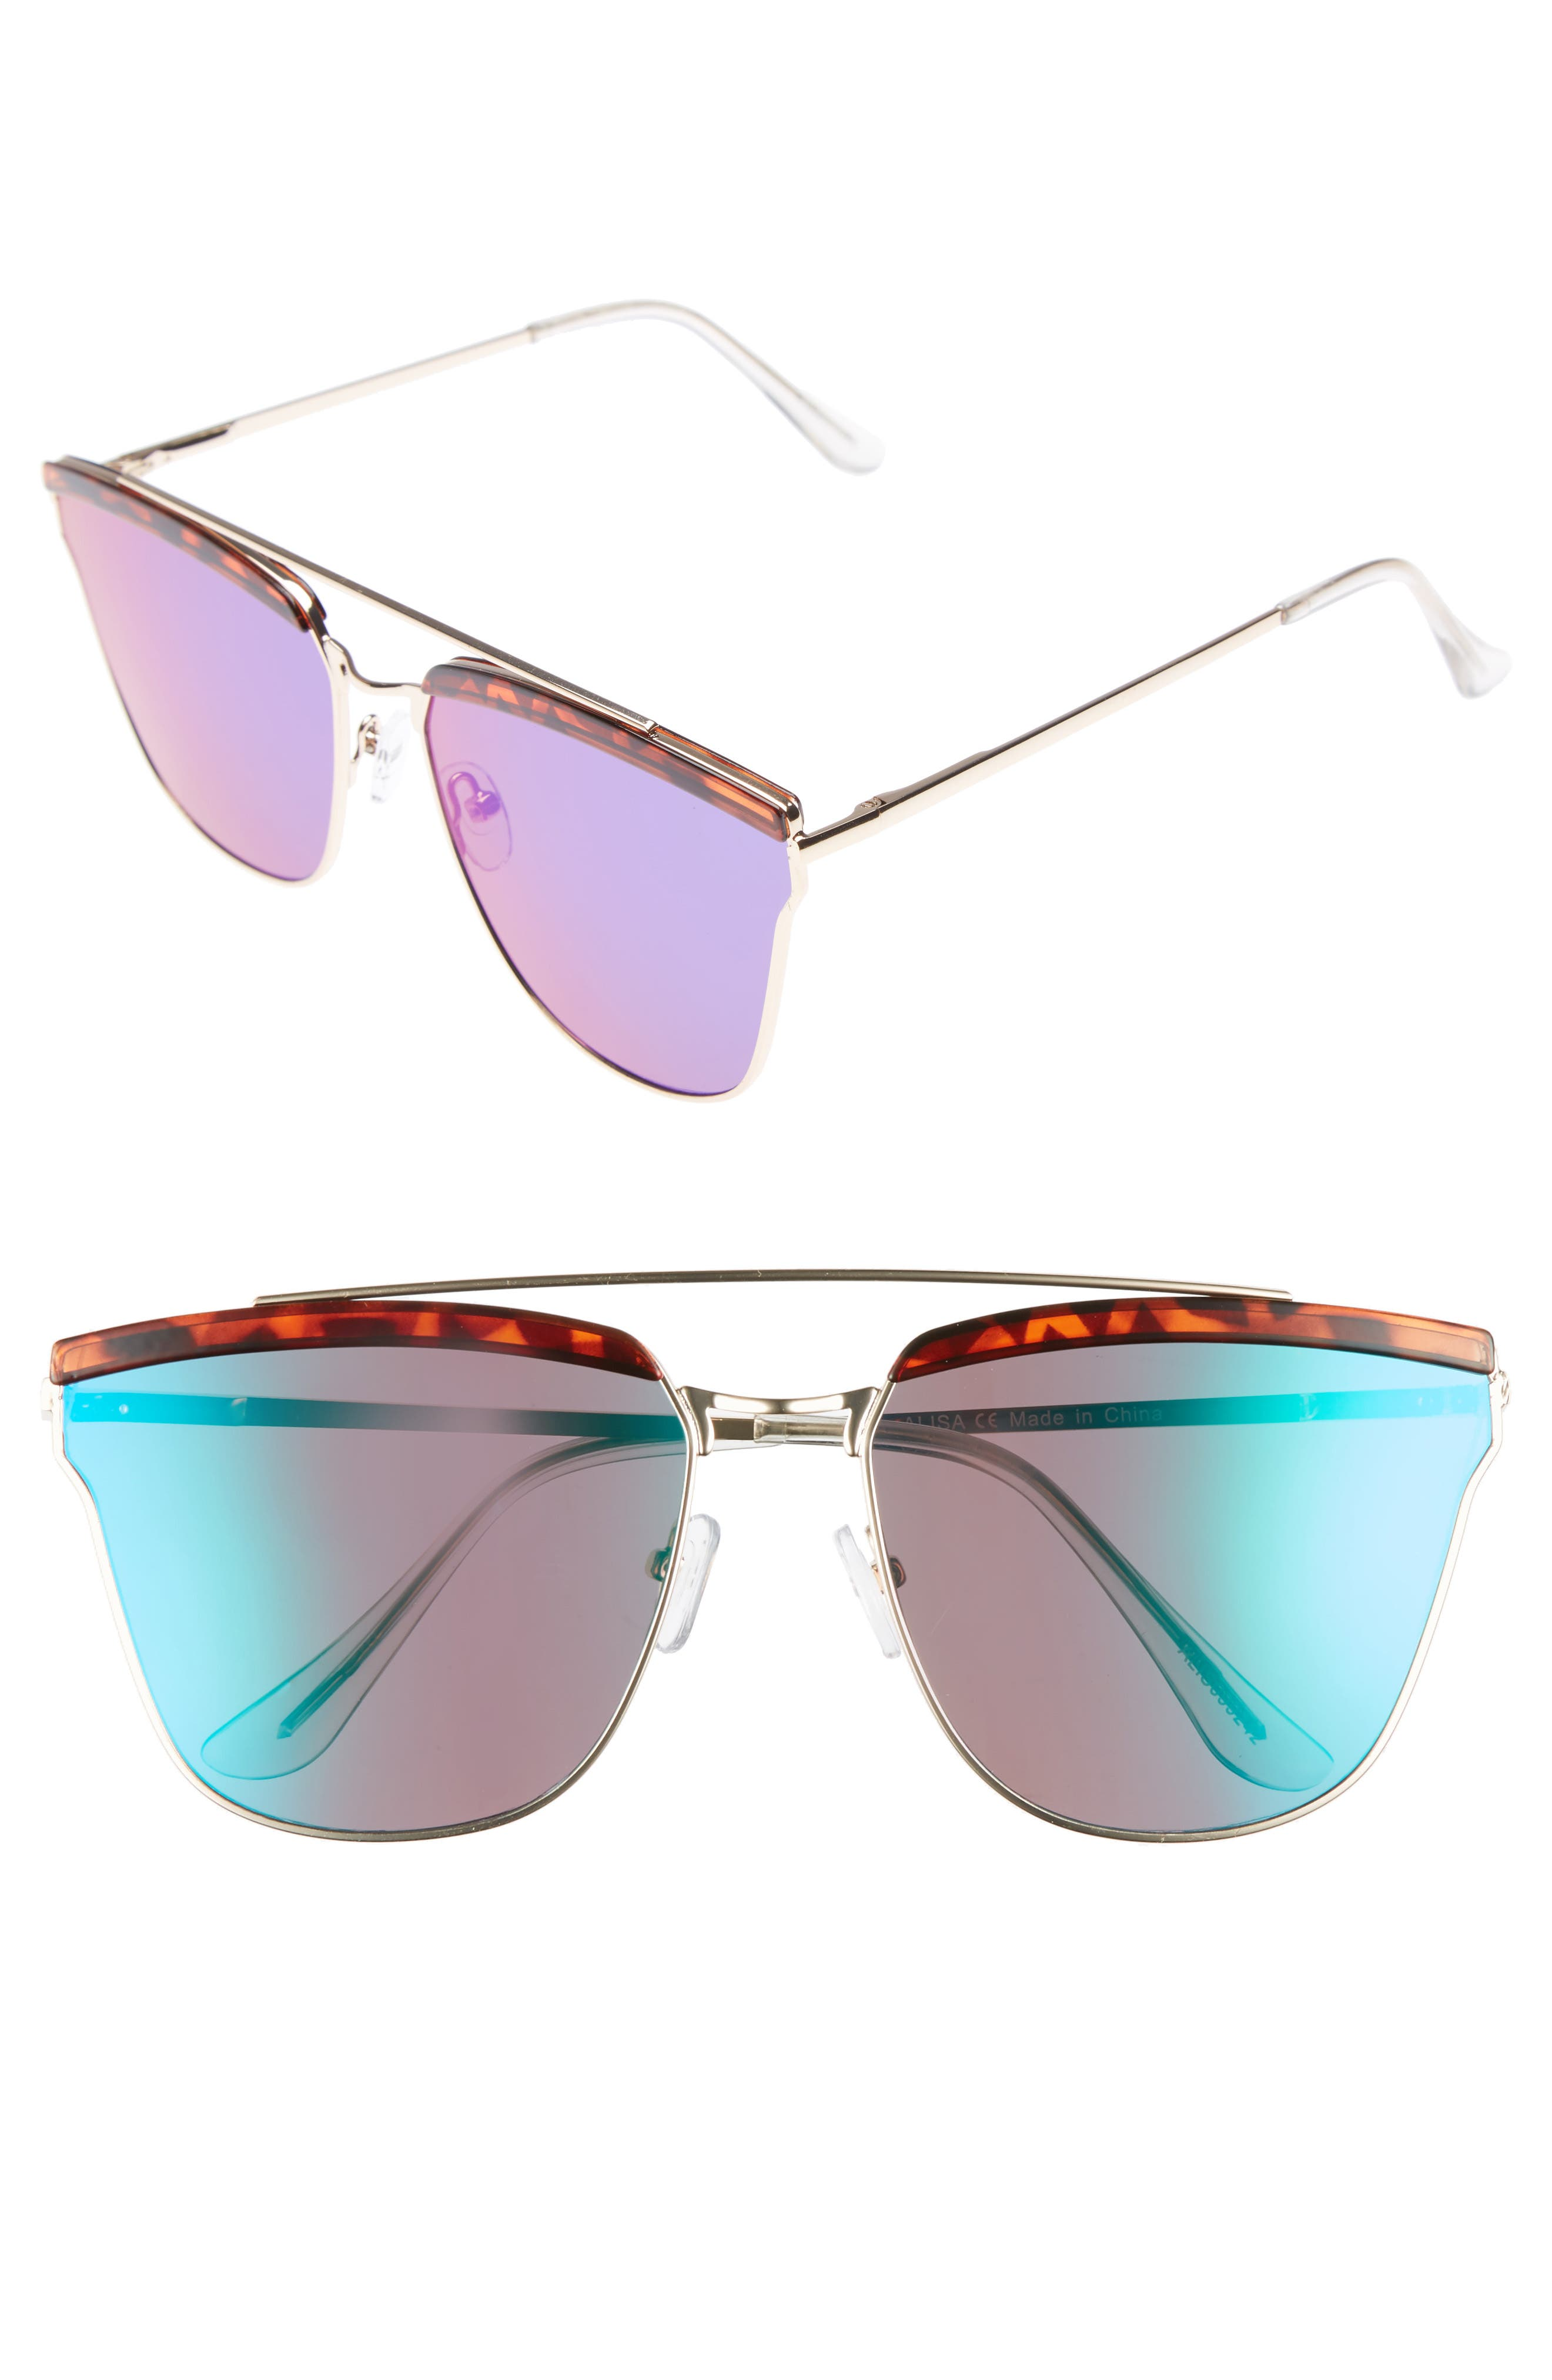 60mm Mirror Sunglasses,                         Main,                         color, Gold/ Tort